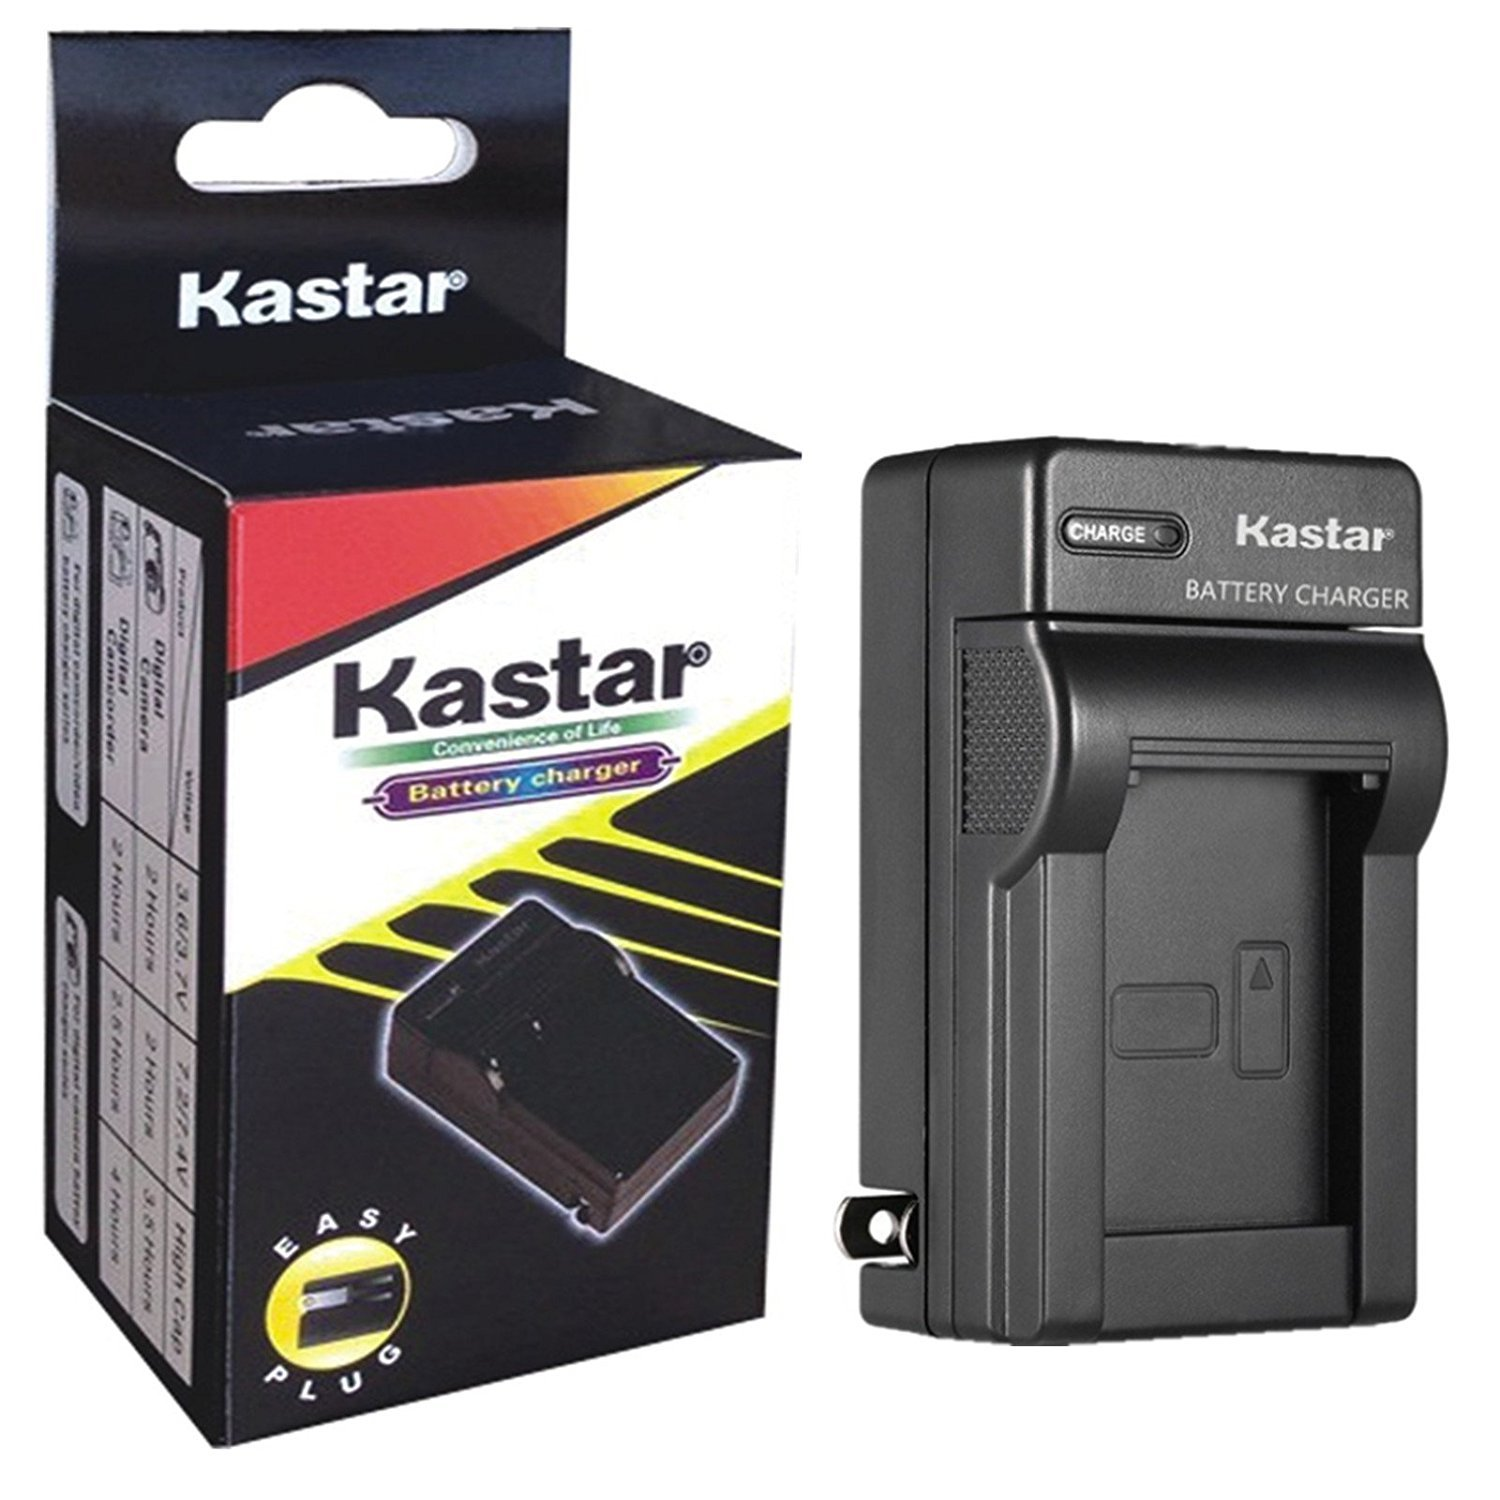 Kastar USB充電器、バッテリーfor nb-2l-3 nb-2l nb2l 2l 1 AC charger  B01EKU6SRO